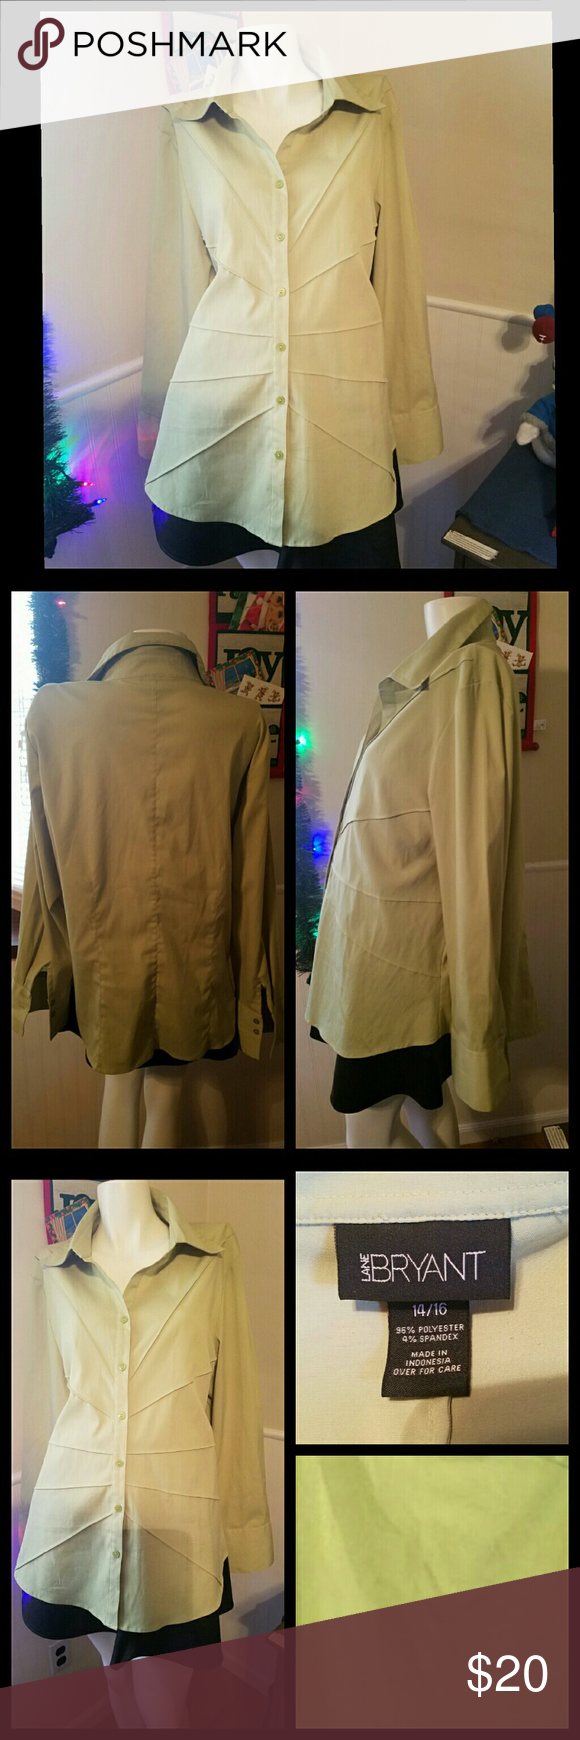 """A Pop of Color Lime green button down. Photos don't do the color justice. Good condition. Last photo shows an example of the actual color.   Measurements Bust 40-42"""" Waist 34-36"""" Hip 42-44"""" Inseam length 14.5"""" Length from shoulder to bottom 27"""" Lane Bryant Tops Button Down Shirts"""